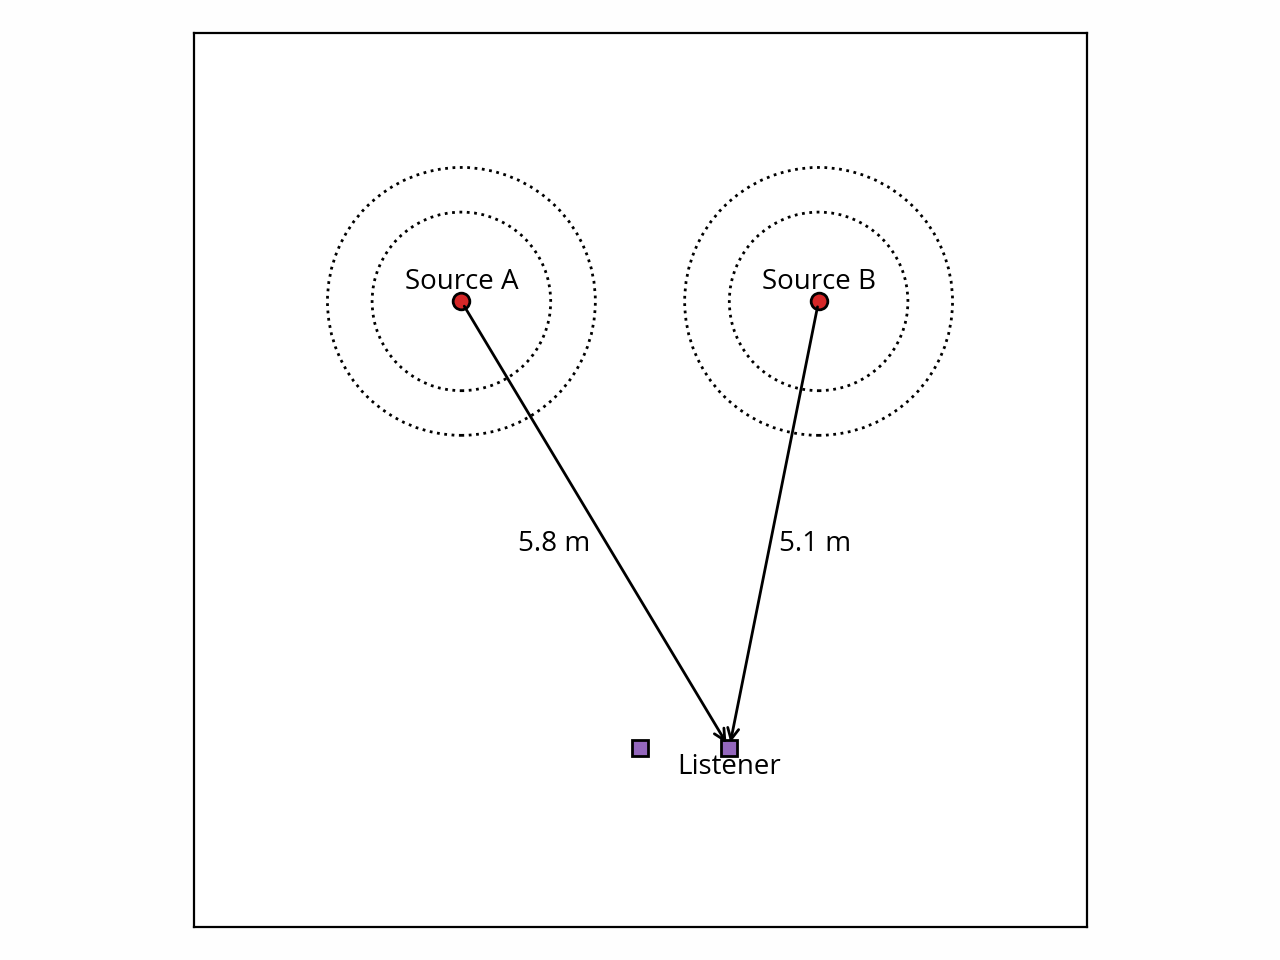 Two point sources, lateral listener